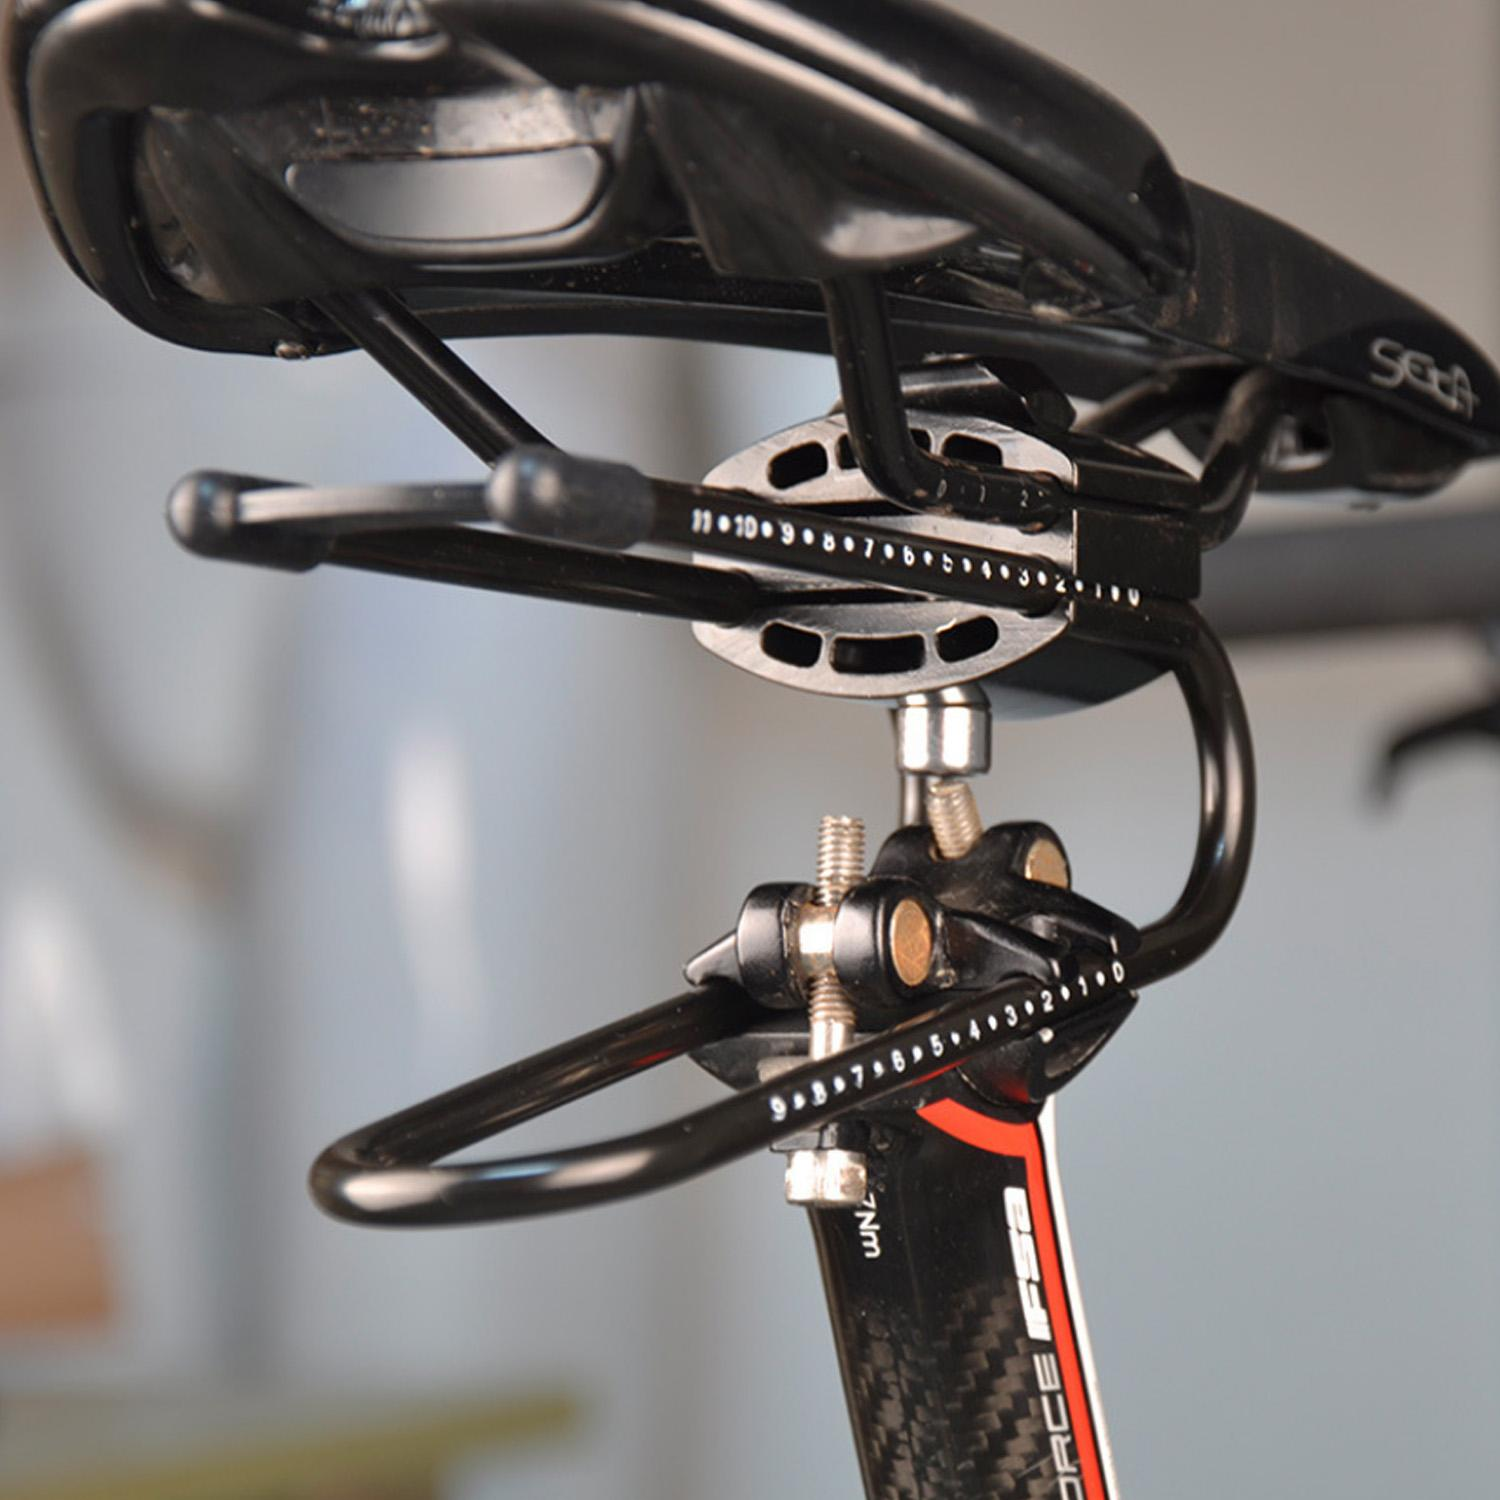 Bike Parts for sale - Bicyle Parts Online Deals & Prices in